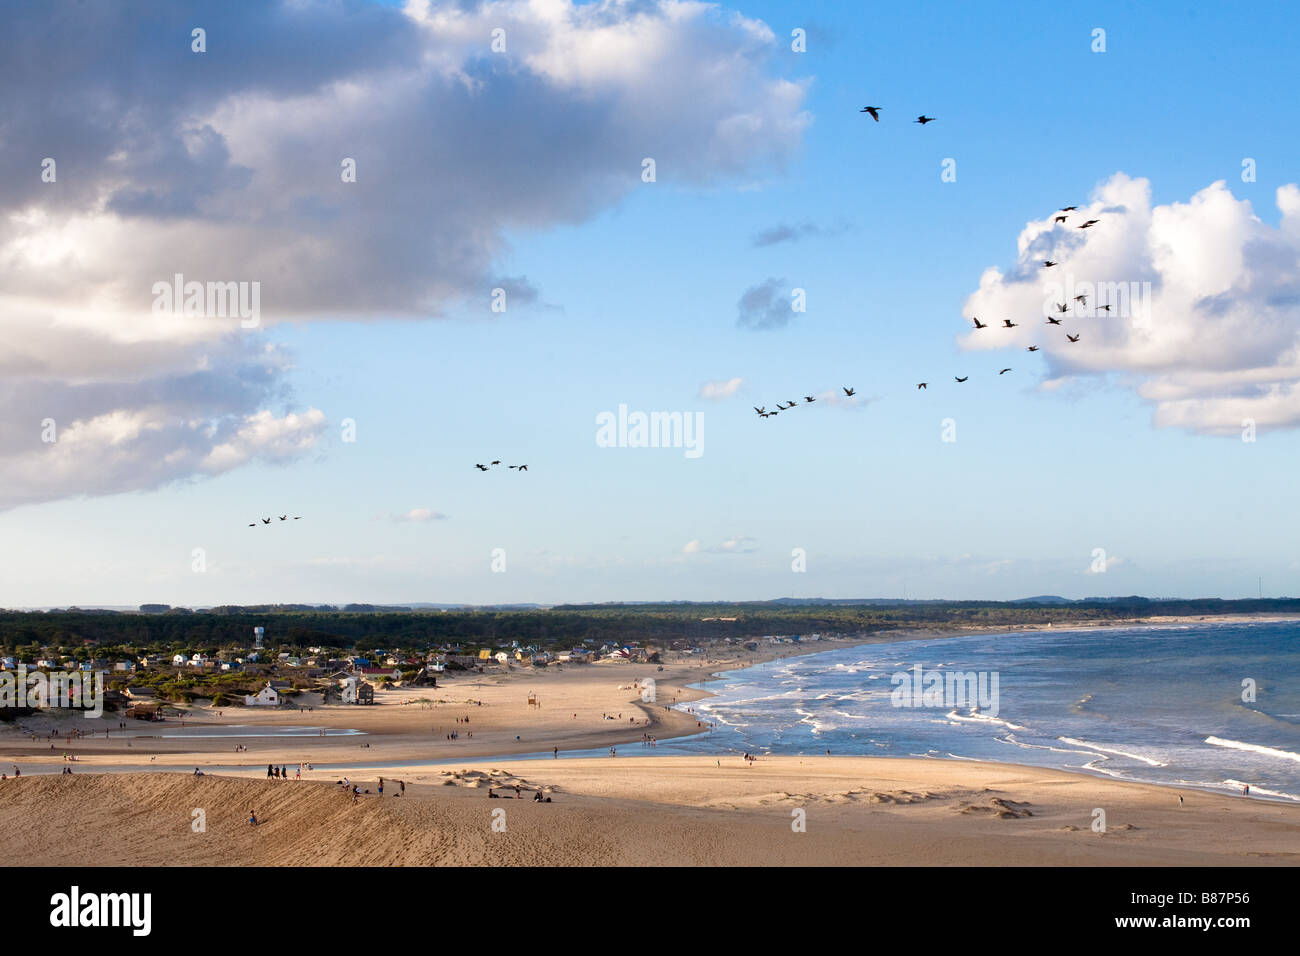 View of Valizas town, beach and stream form the height of the dunes - Stock Image